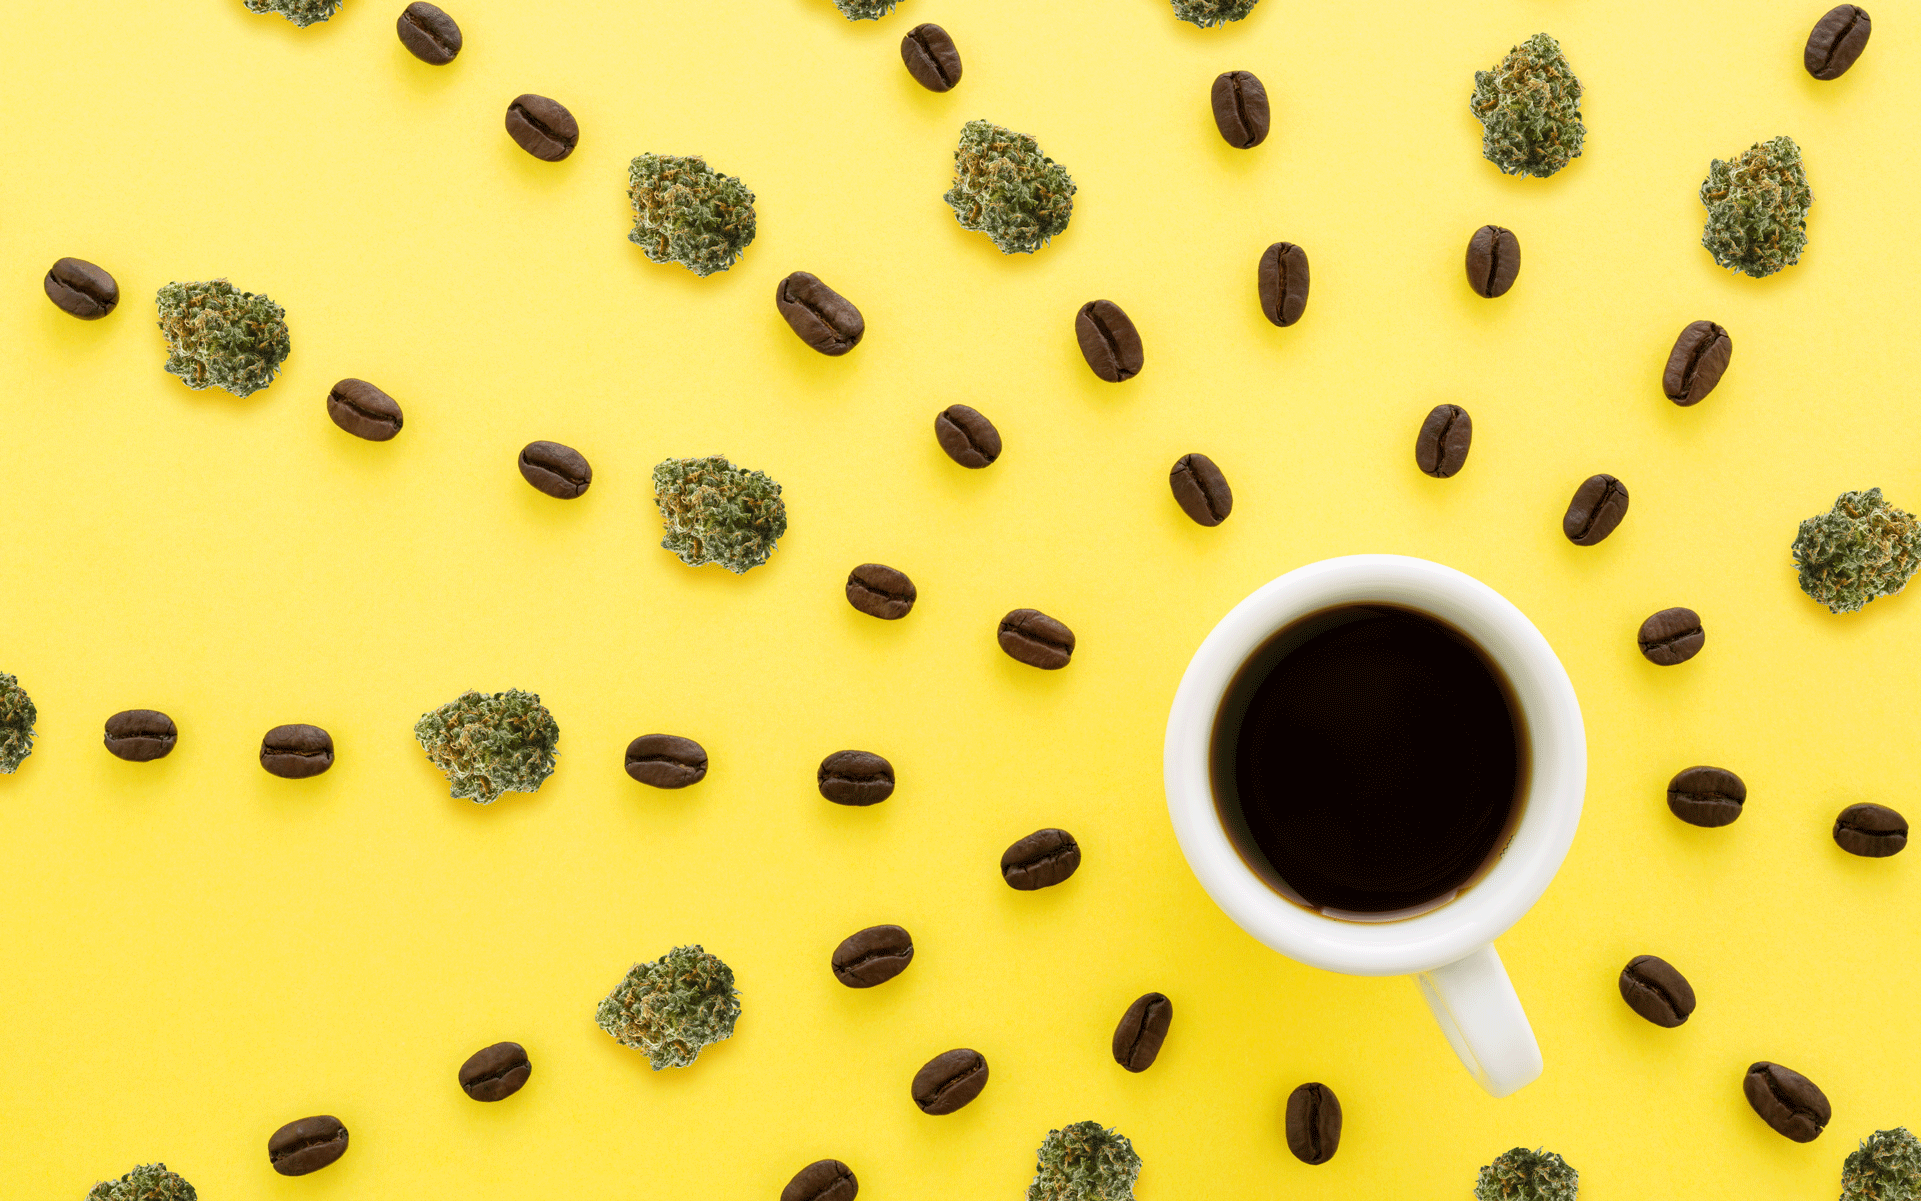 Next Level Wake 'n' Bake With Coffee-ish Strains